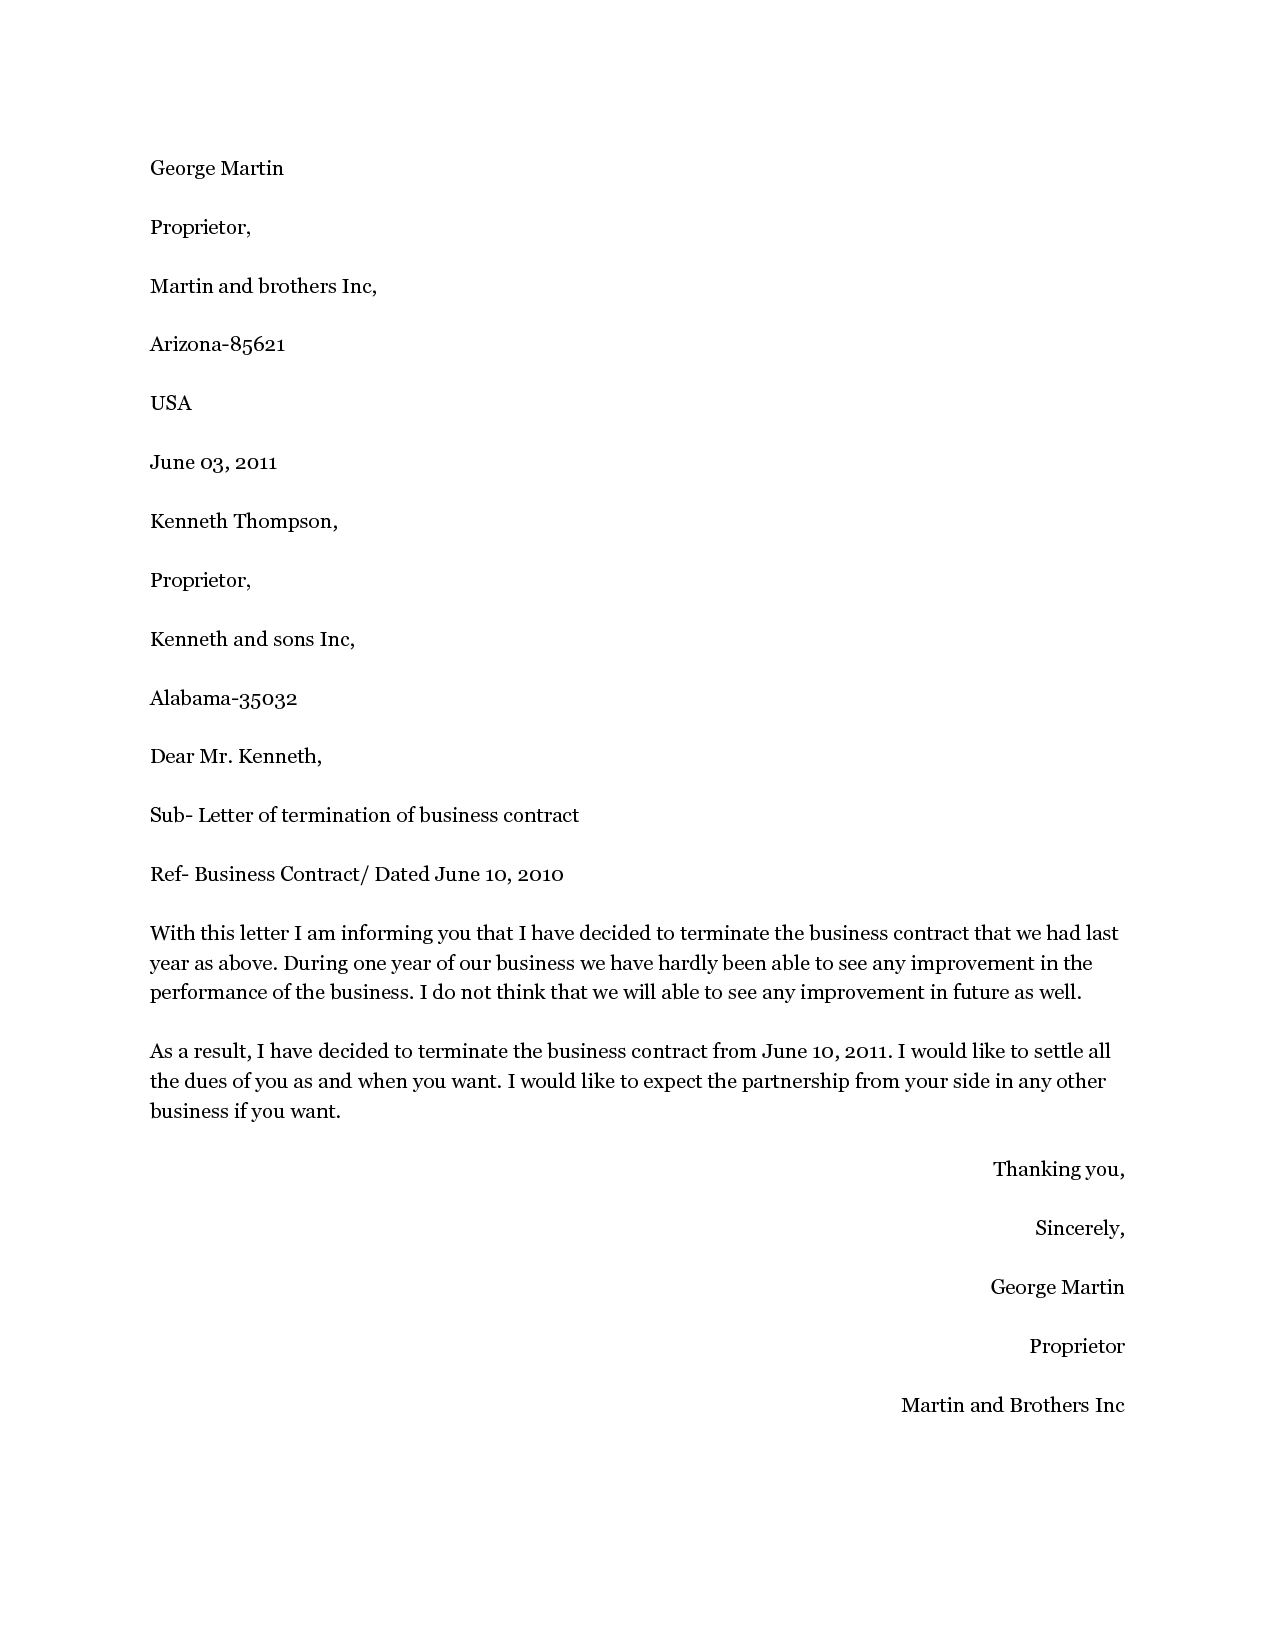 Termination Of Contract Agreement Letter Template - 20 Luxury Termination Service Agreement Letter Sample